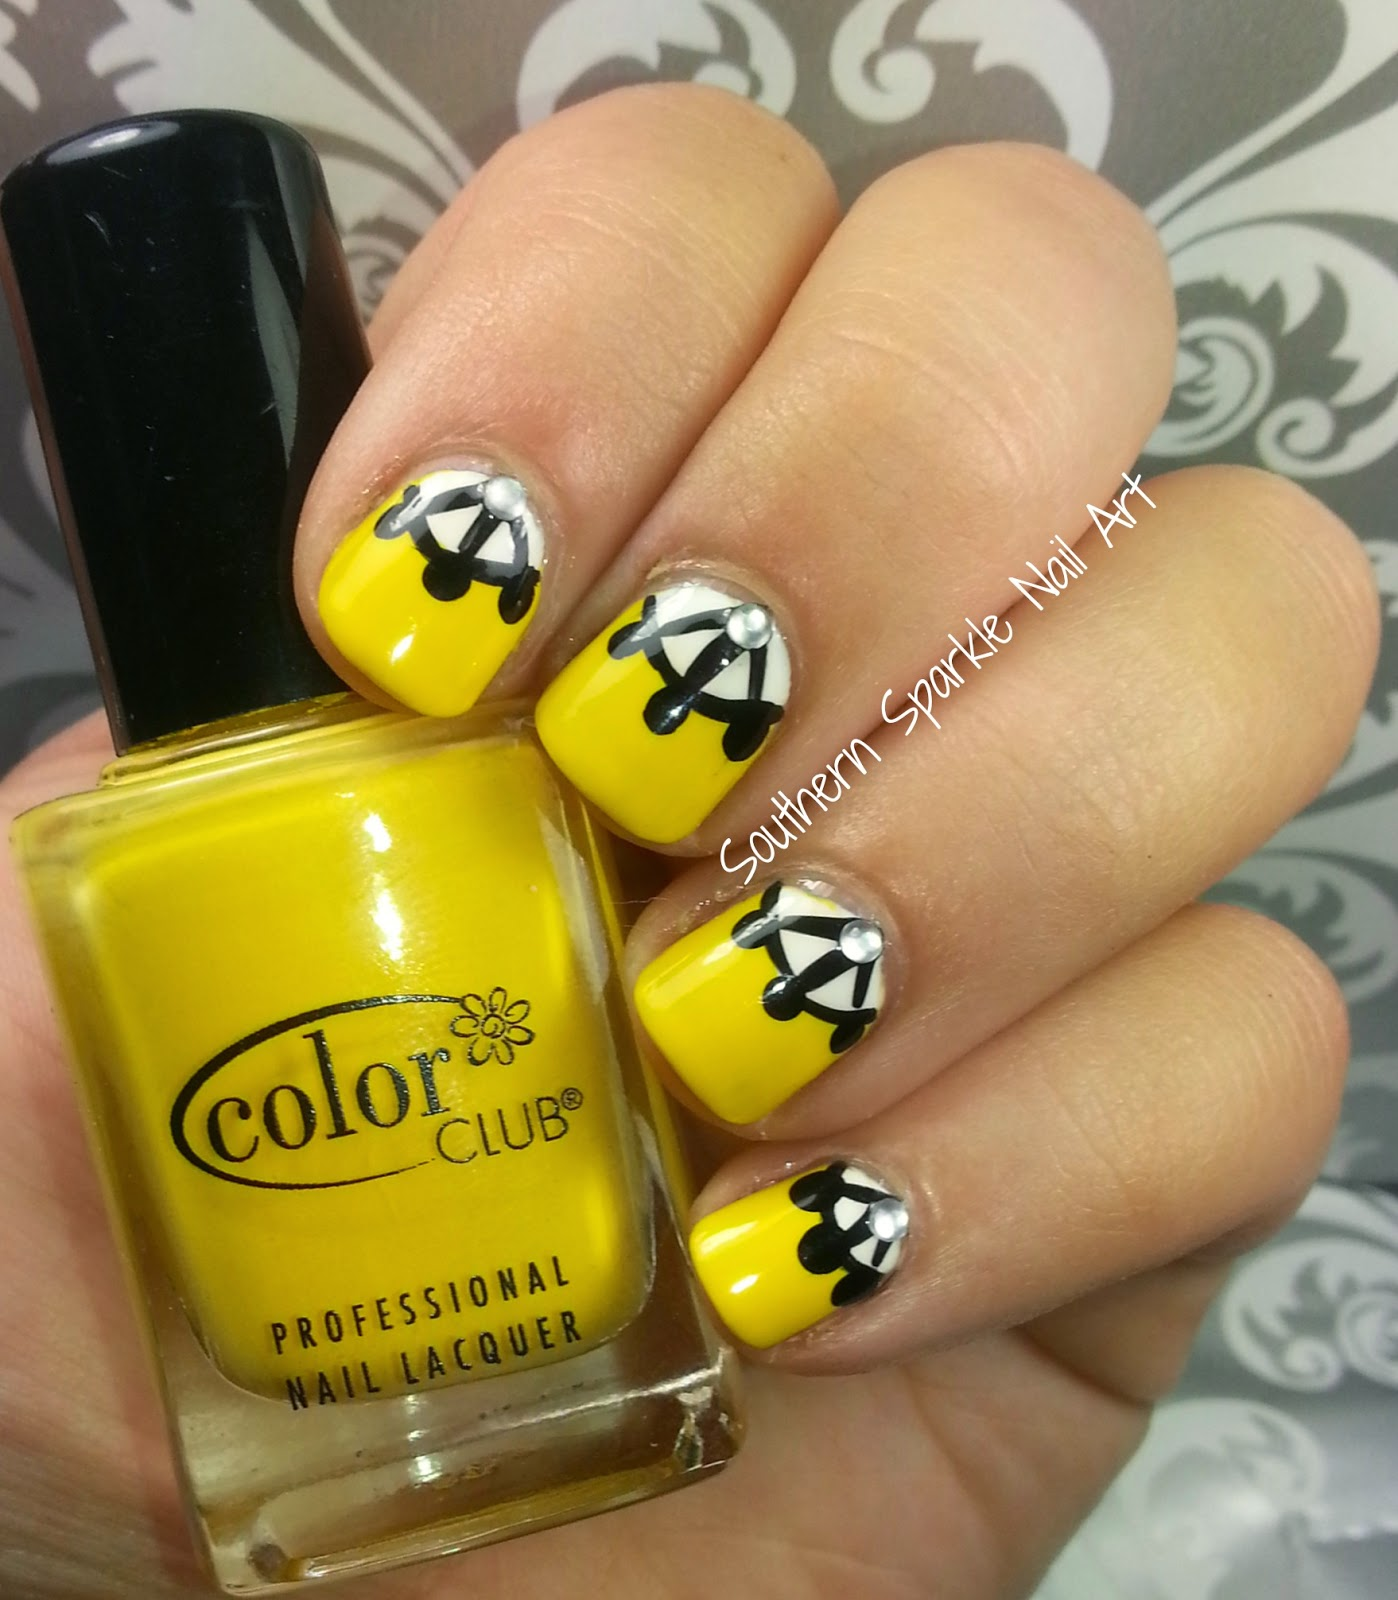 Manis & Makeovers: Twinsie Thursday - Half Moon Manicure